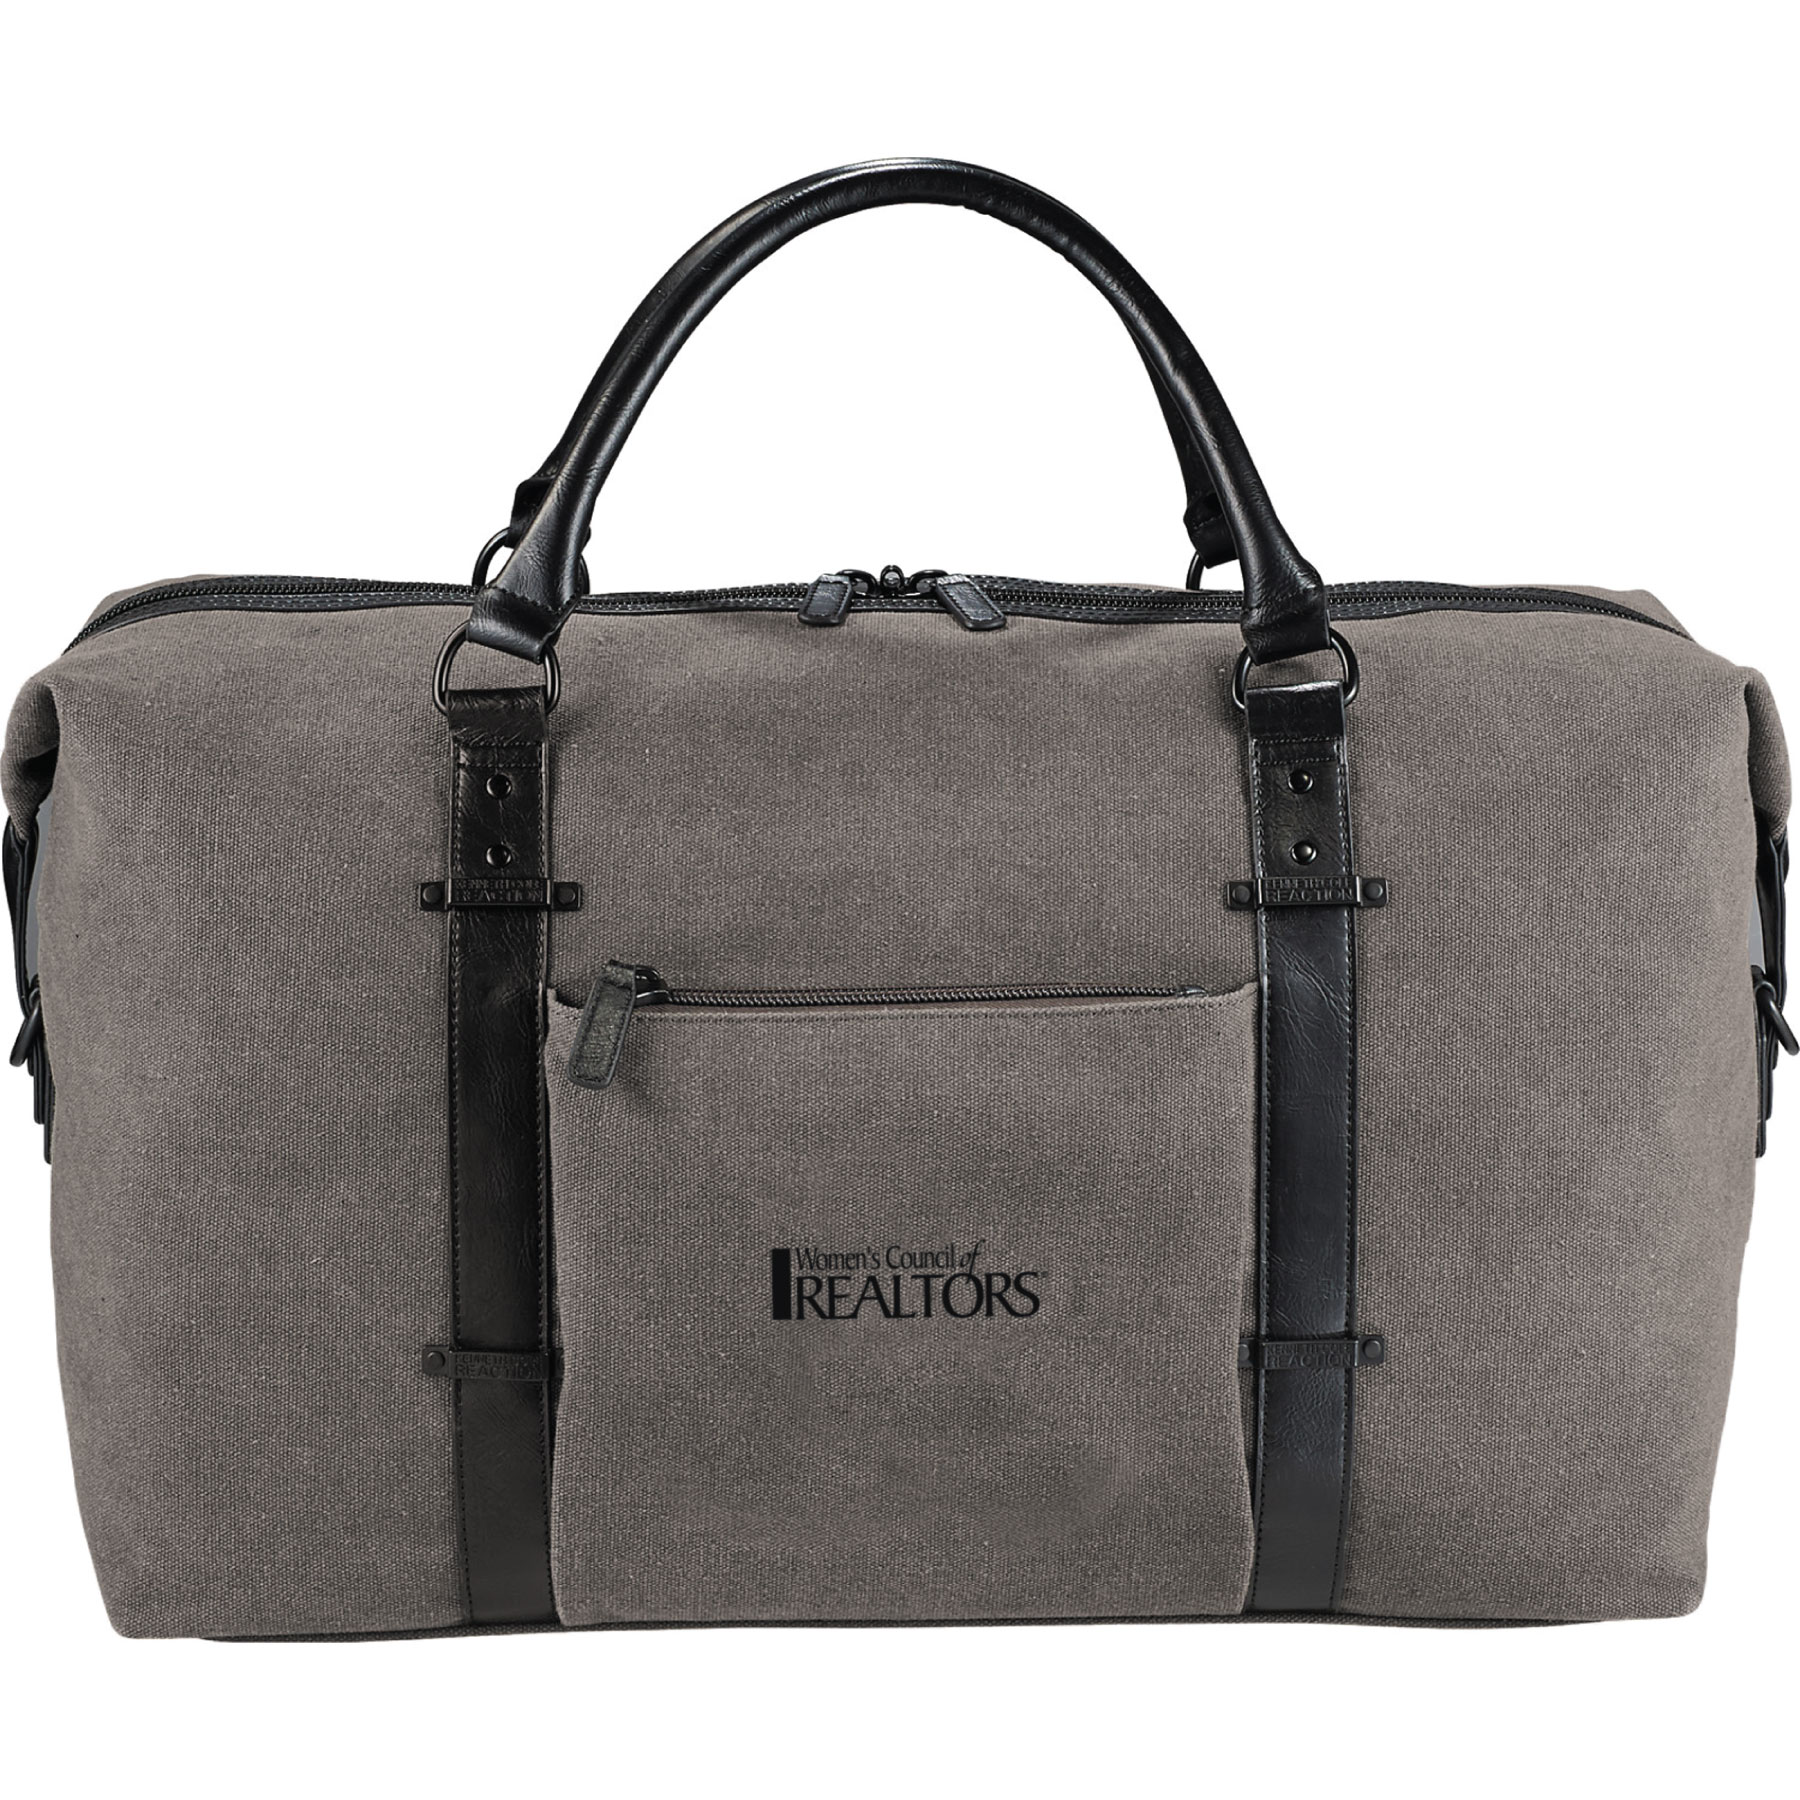 WCR Kenneth Cole® 20 Inch Canvas Duffel Bag Bags,Keneth,Coles,Duffels,Bags,Satchels,Satchells,